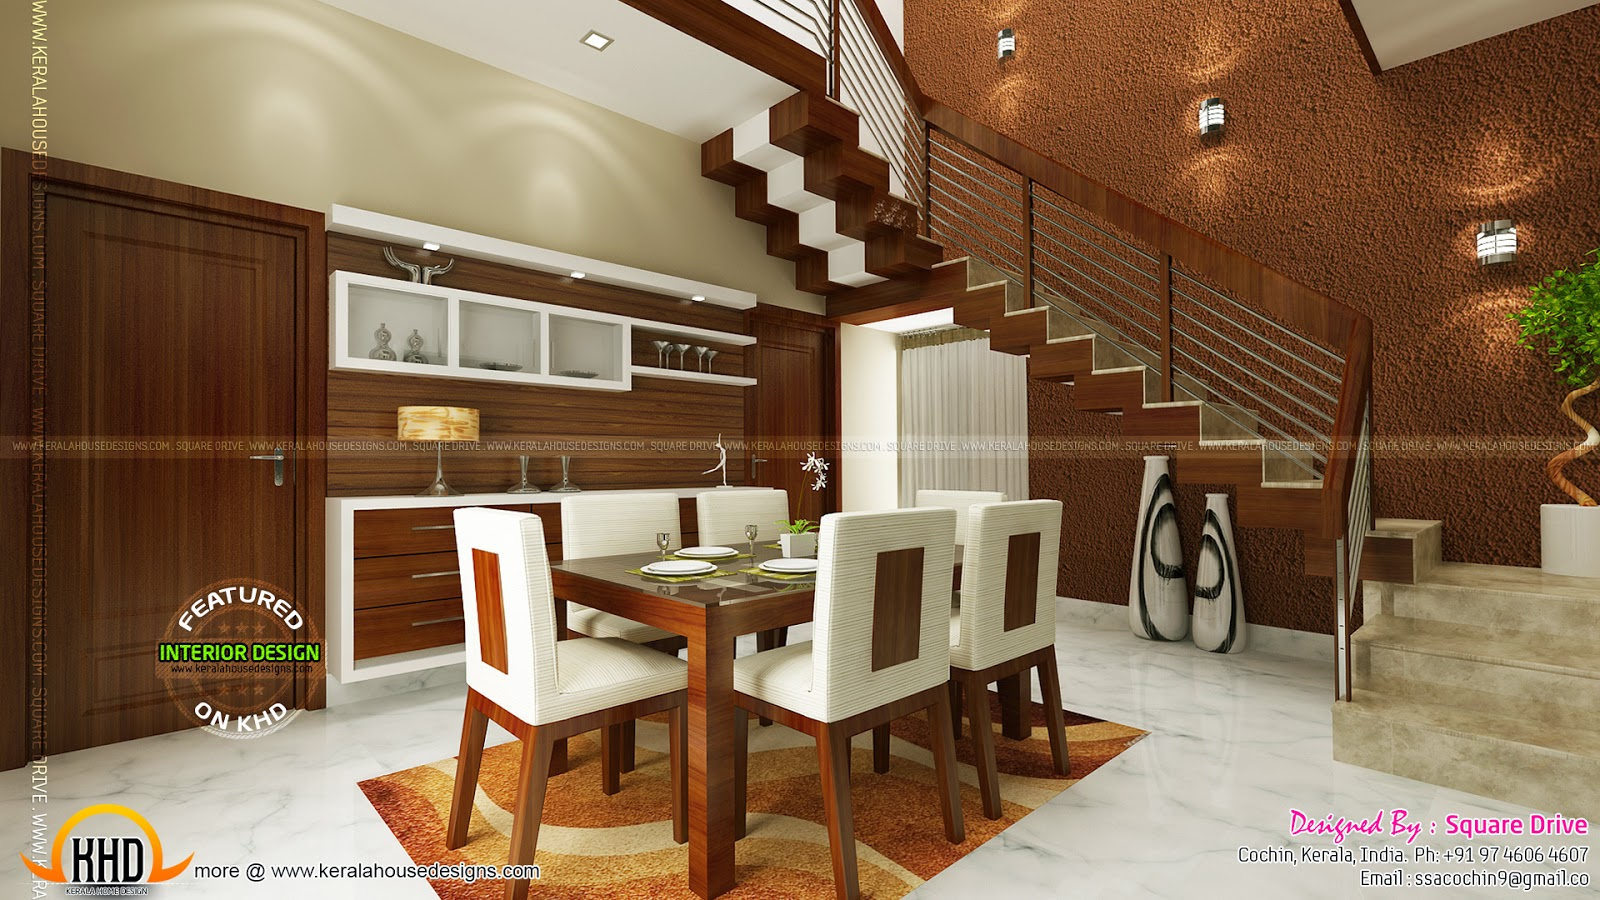 Cochin interior design kerala home design and floor plans for Indoor design home